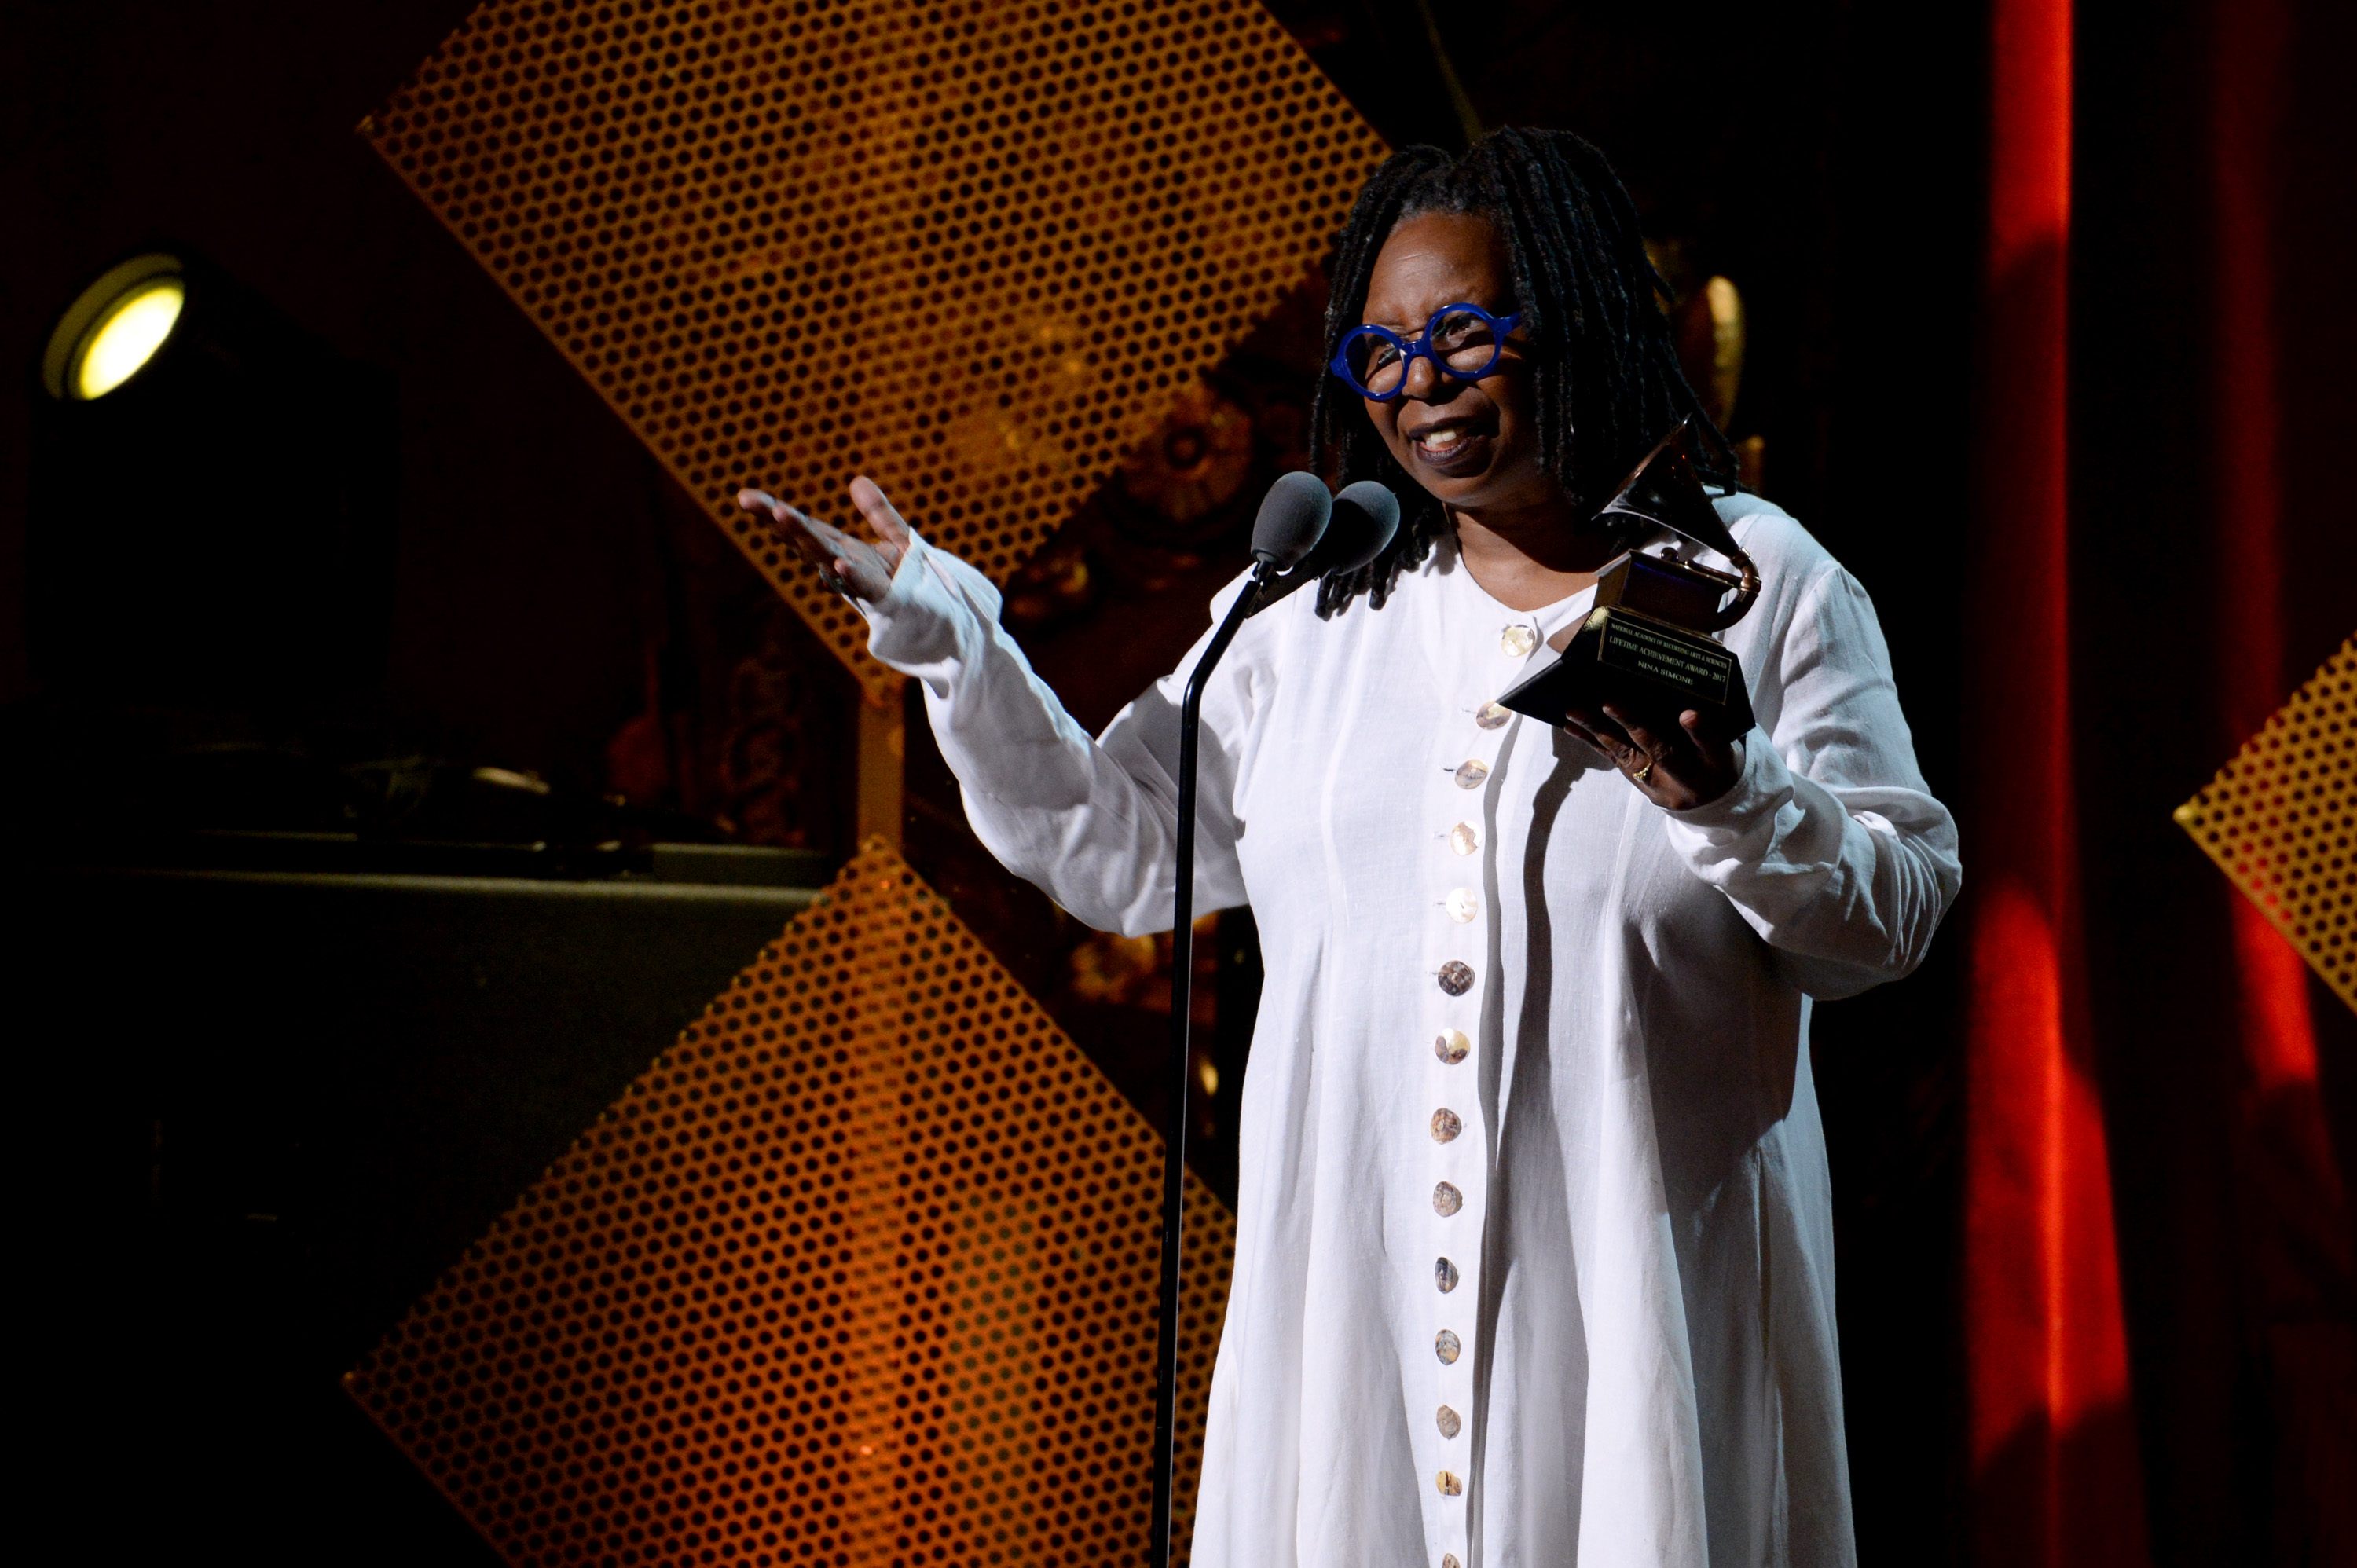 NEW YORK, NY - JULY 11:  Whoopi Goldberg speaks onstage during the GRAMMY Salute to Music Legends at Beacon Theatre on July 11, 2017 in New York City.  (Photo by Michael Kovac/Getty Images for NARAS)